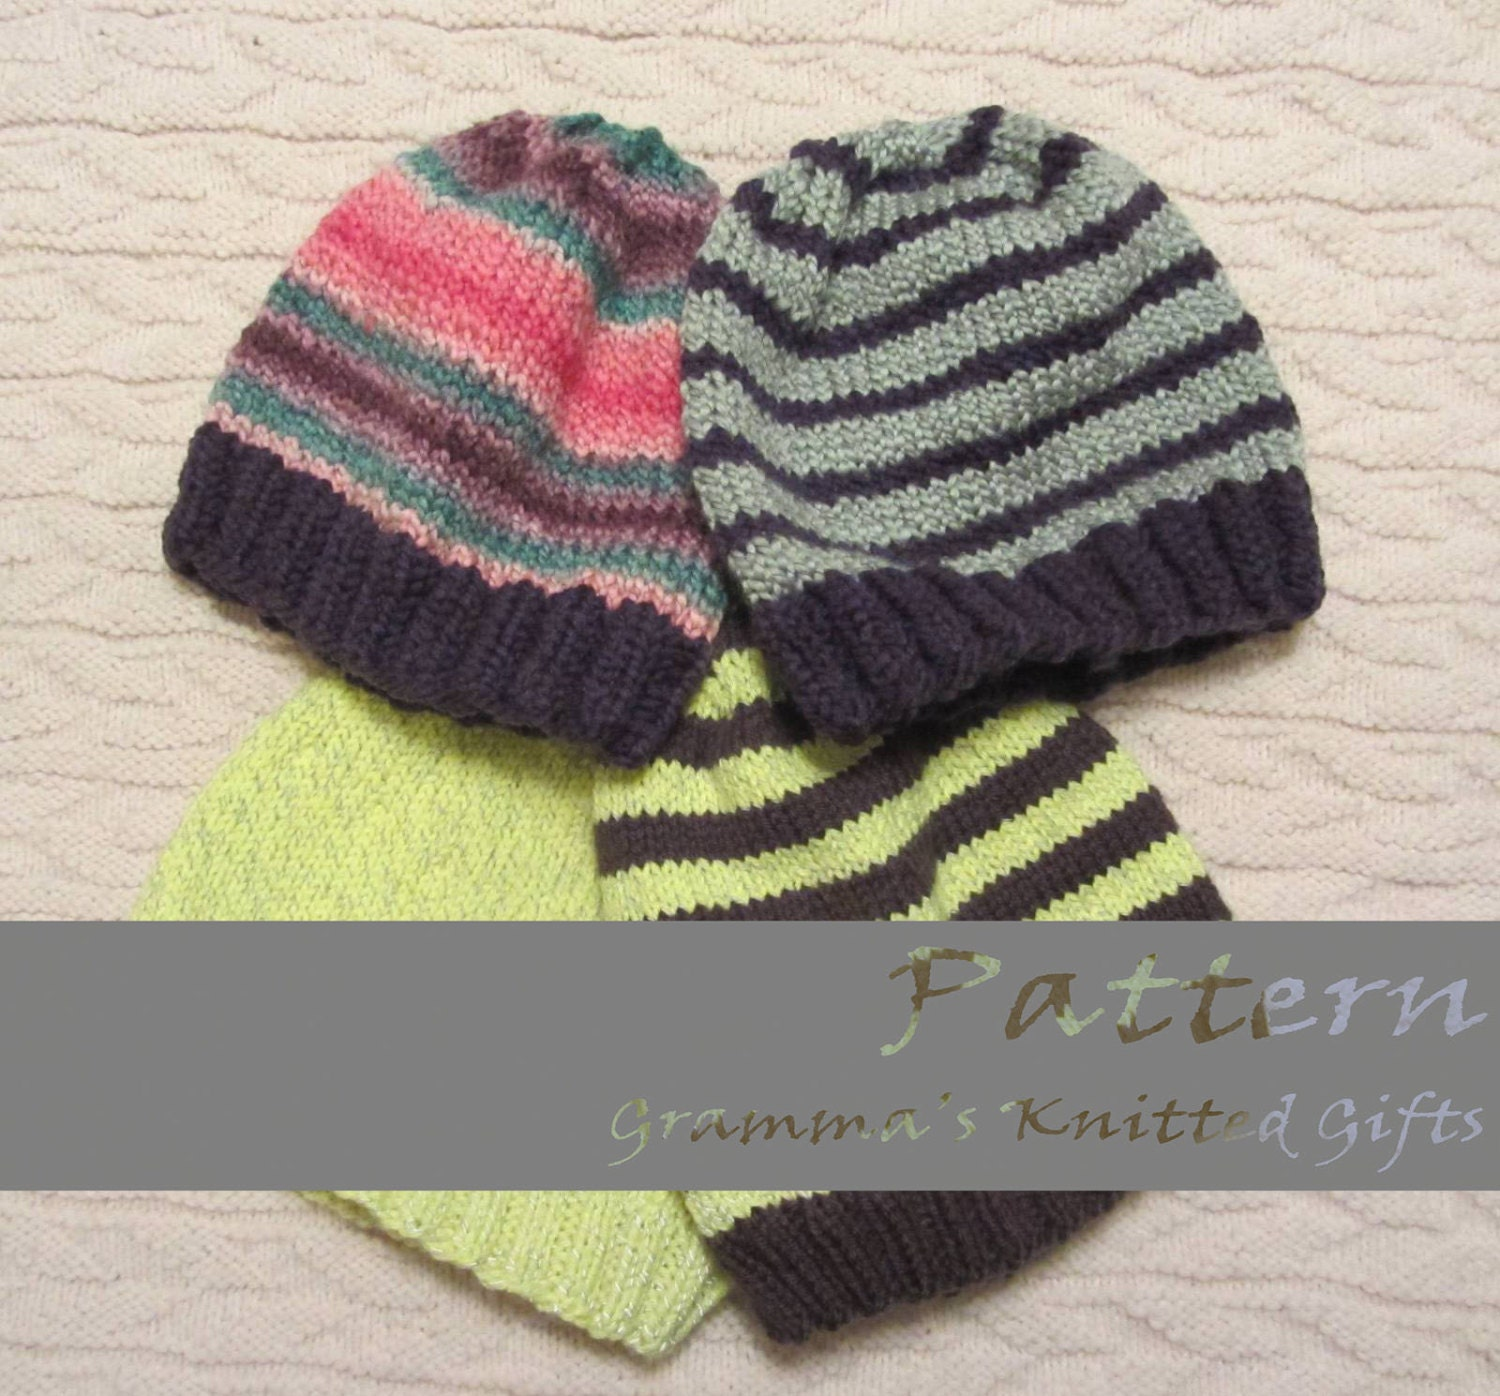 Knitted Beanie Patterns For Adults : Adult Basic Knitted Beanie Pattern